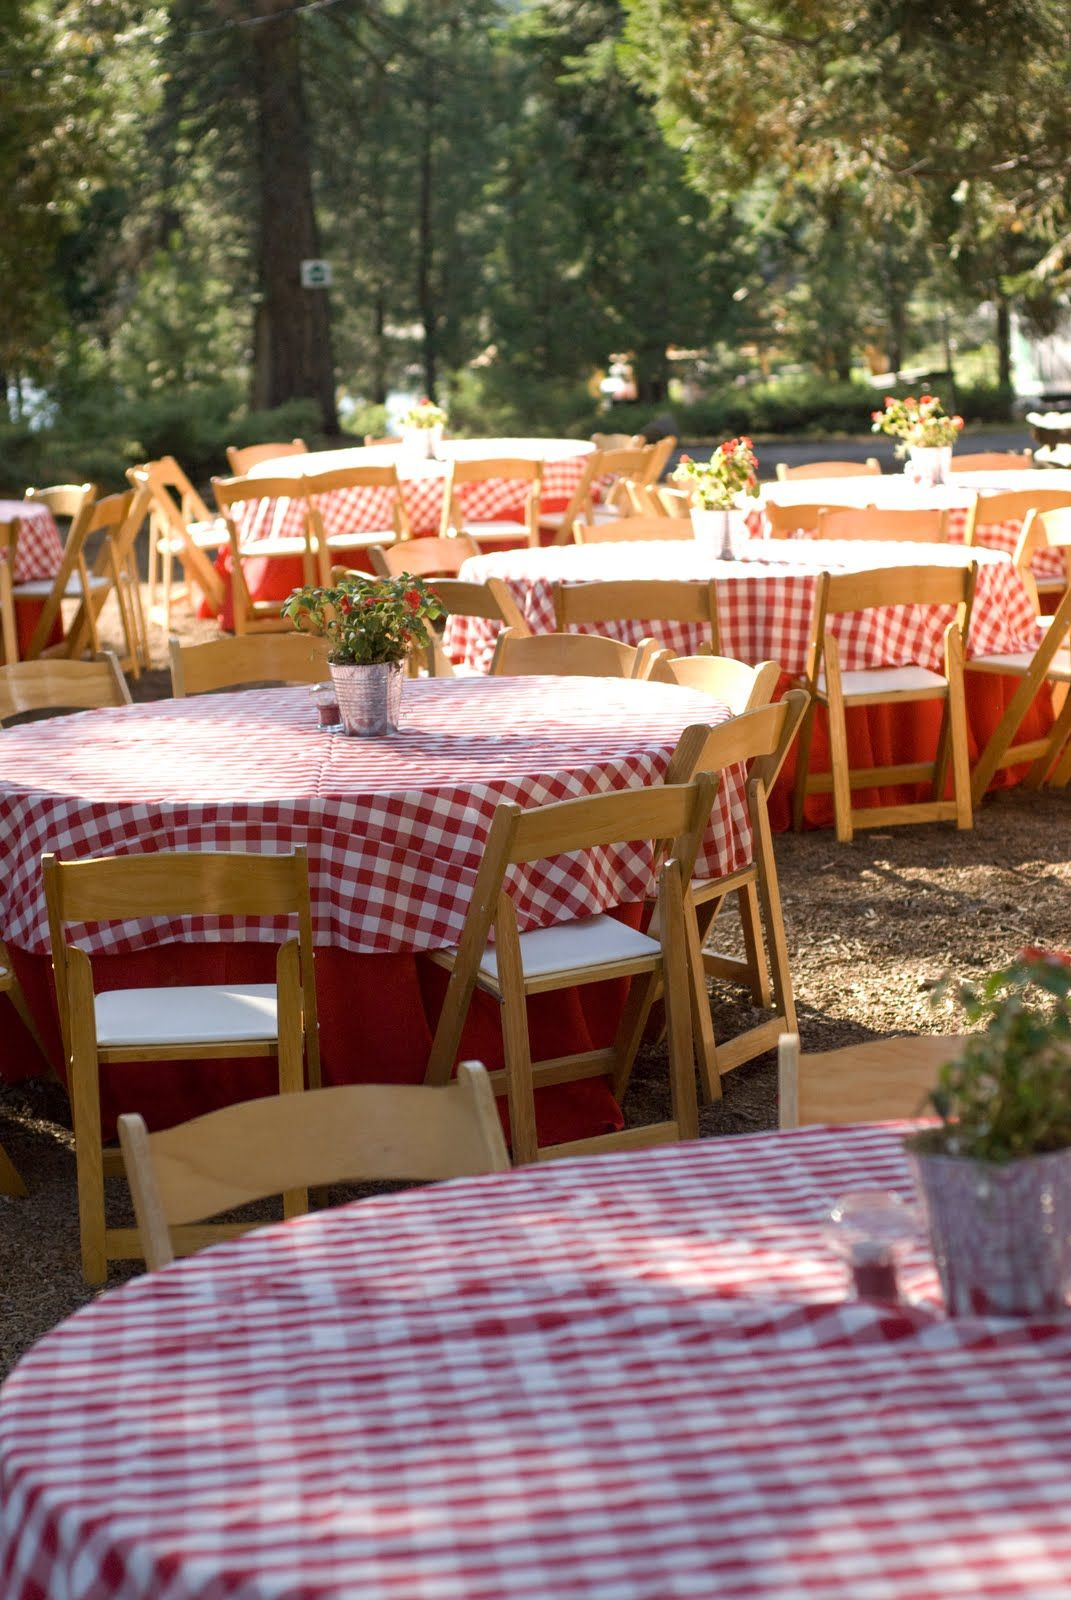 of course the checkered tablecloths my backyard